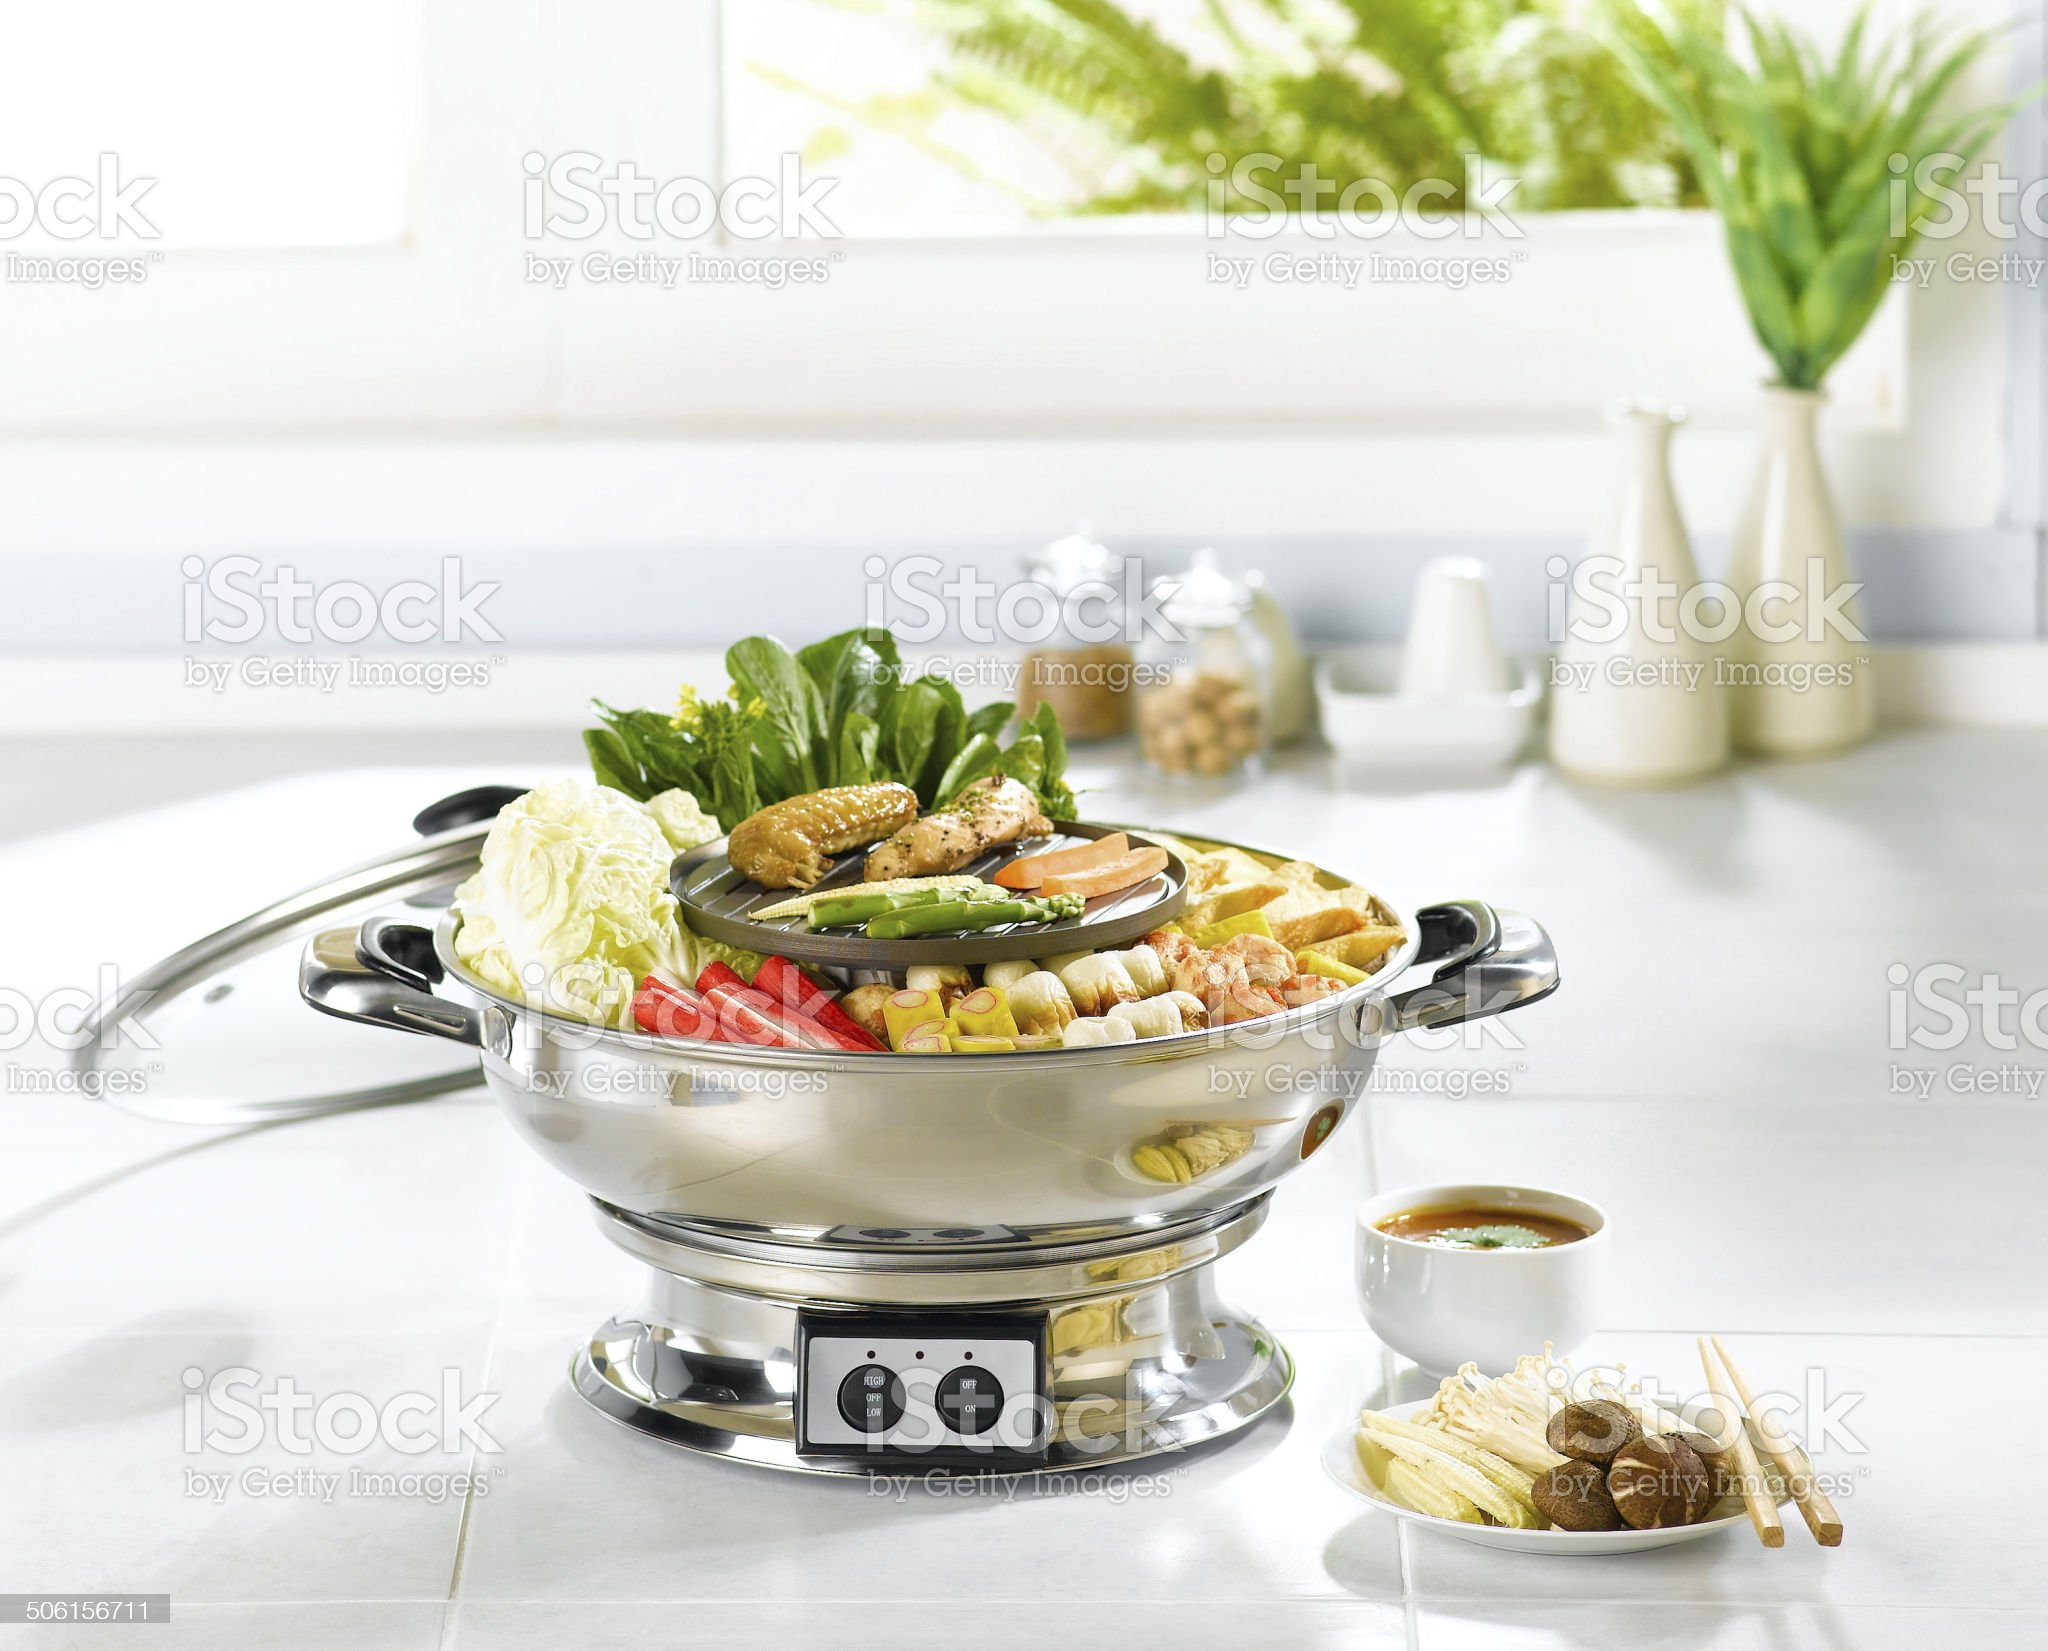 Japanese food style in the kitchen interior royalty-free stock photo